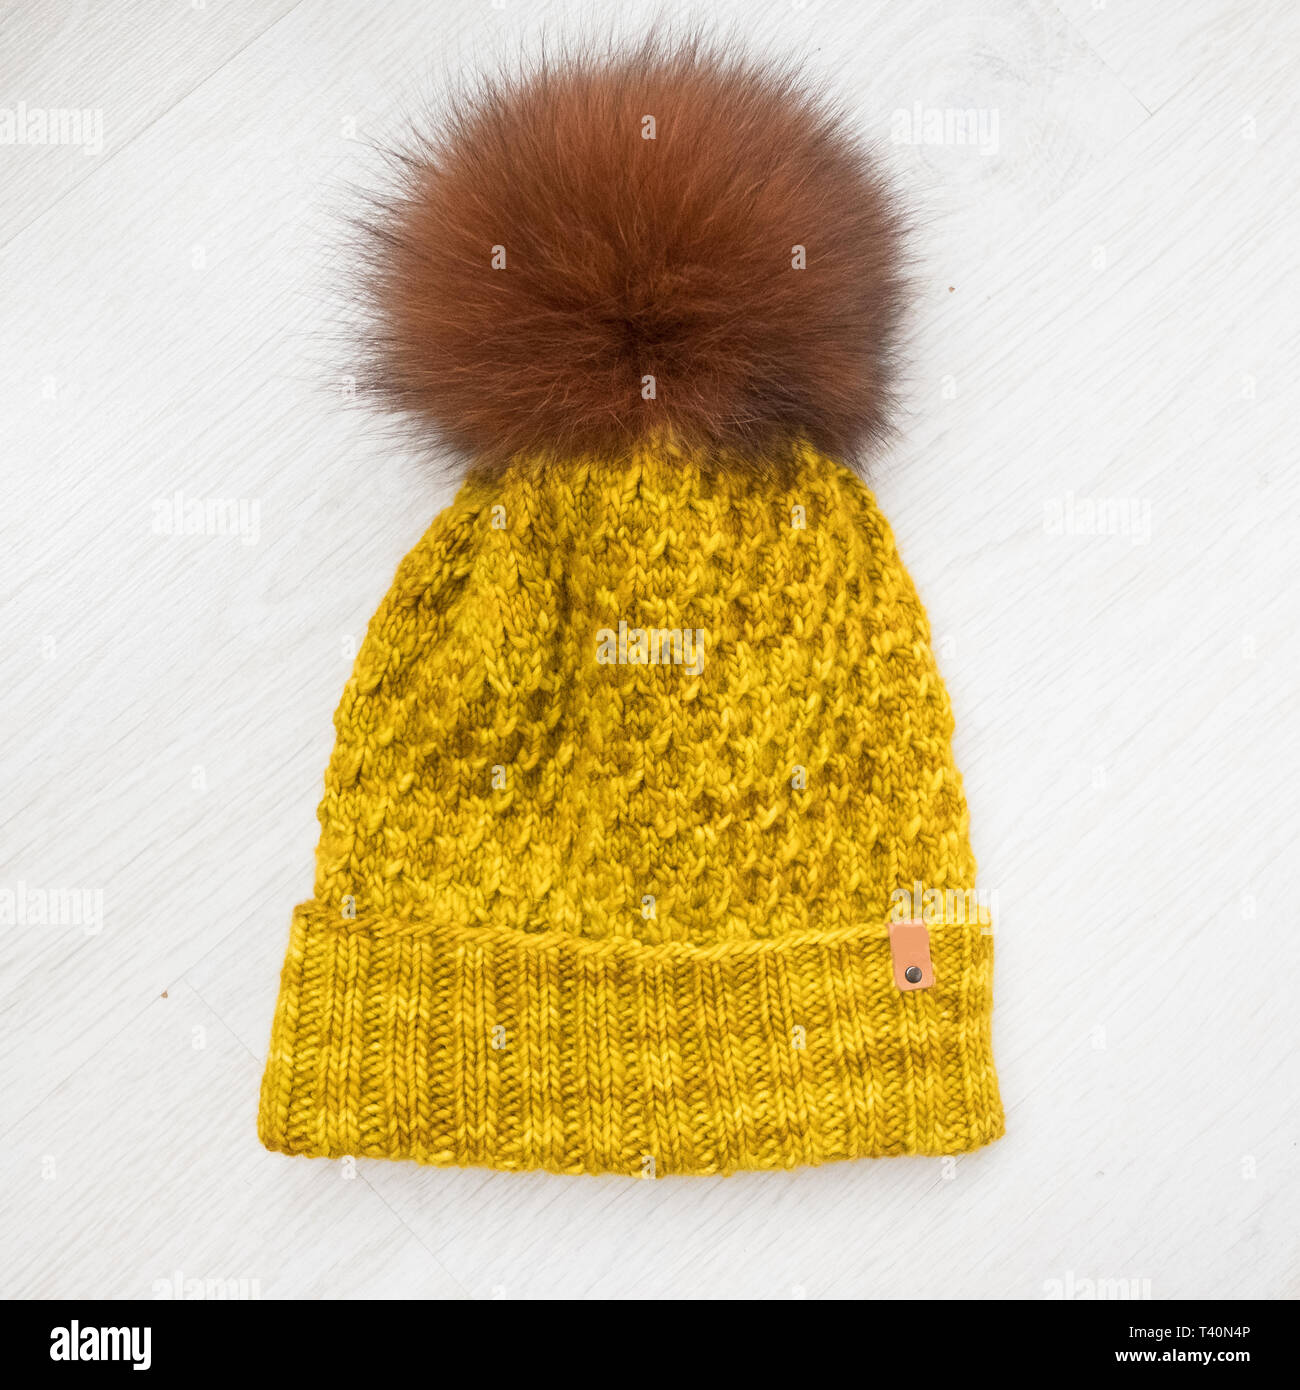 handmade knit hats with fur pompom on white background - Stock Image